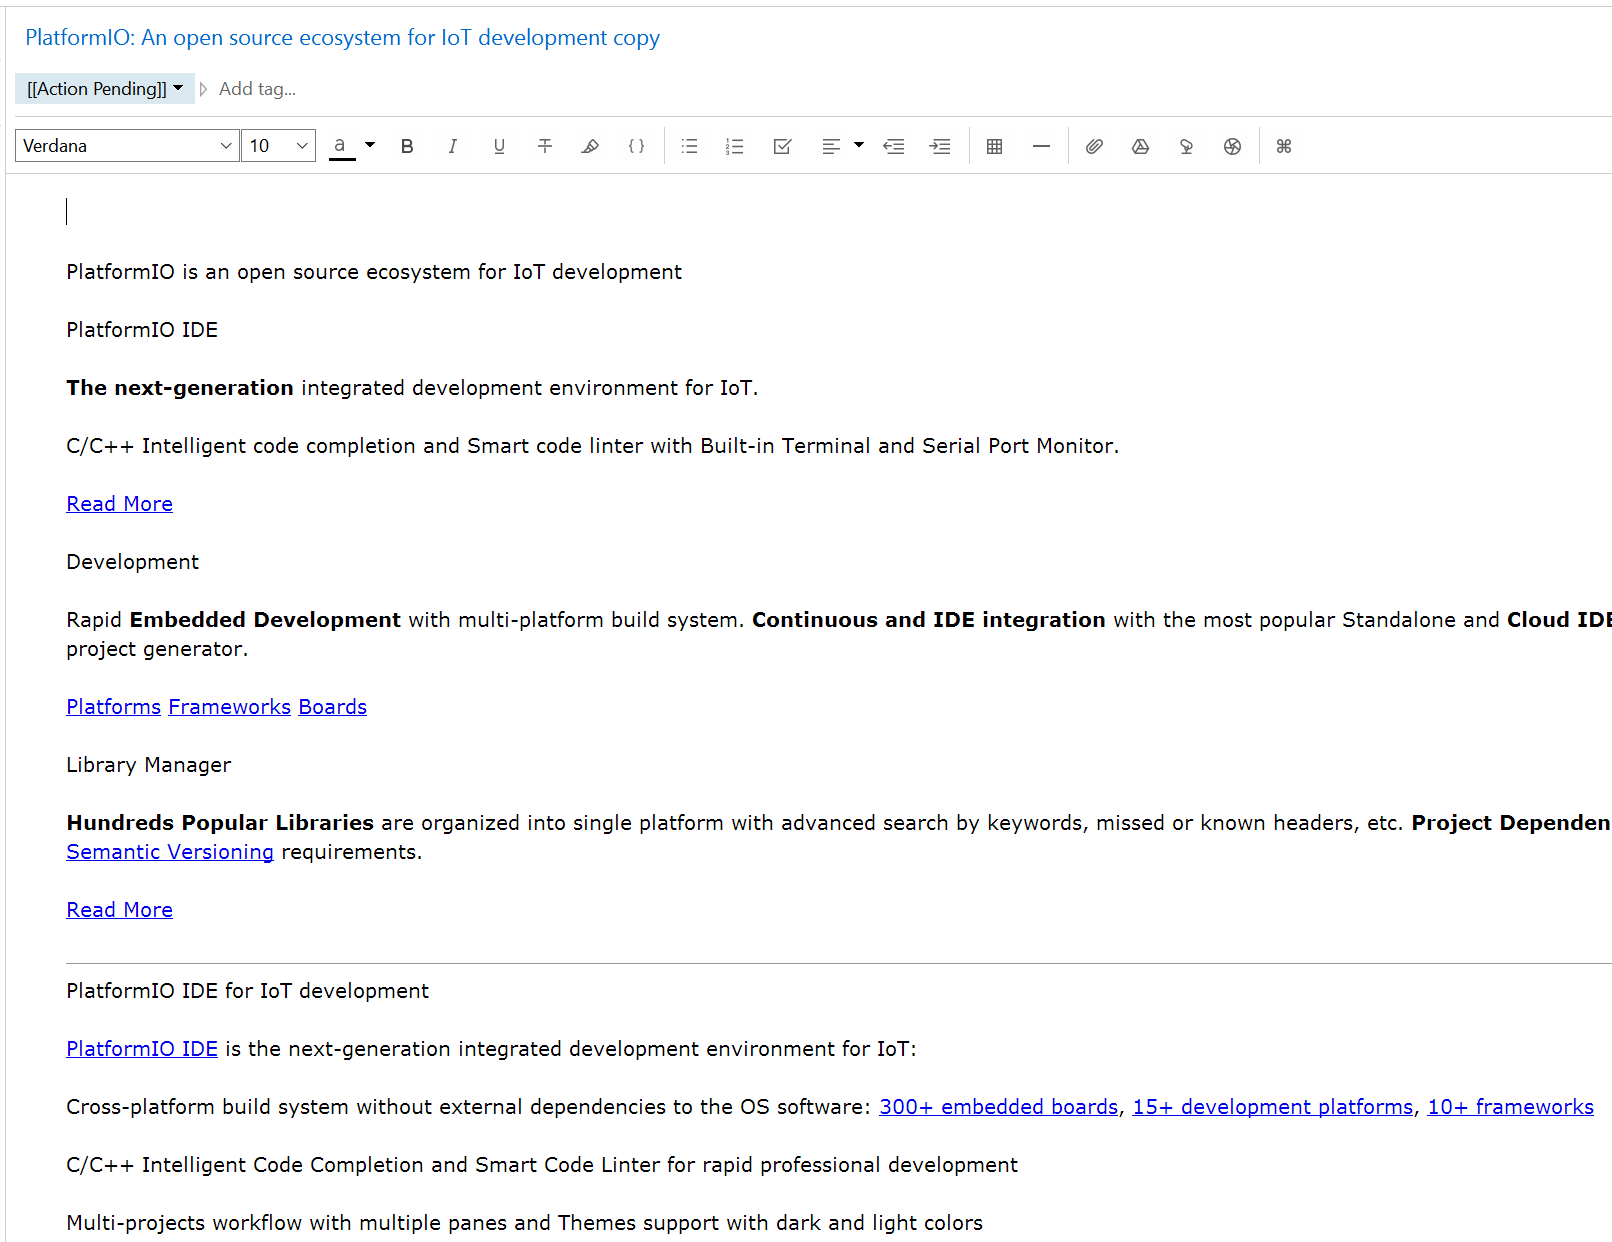 Evernote for Windows 6 6 Beta 2 Released - Evernote for